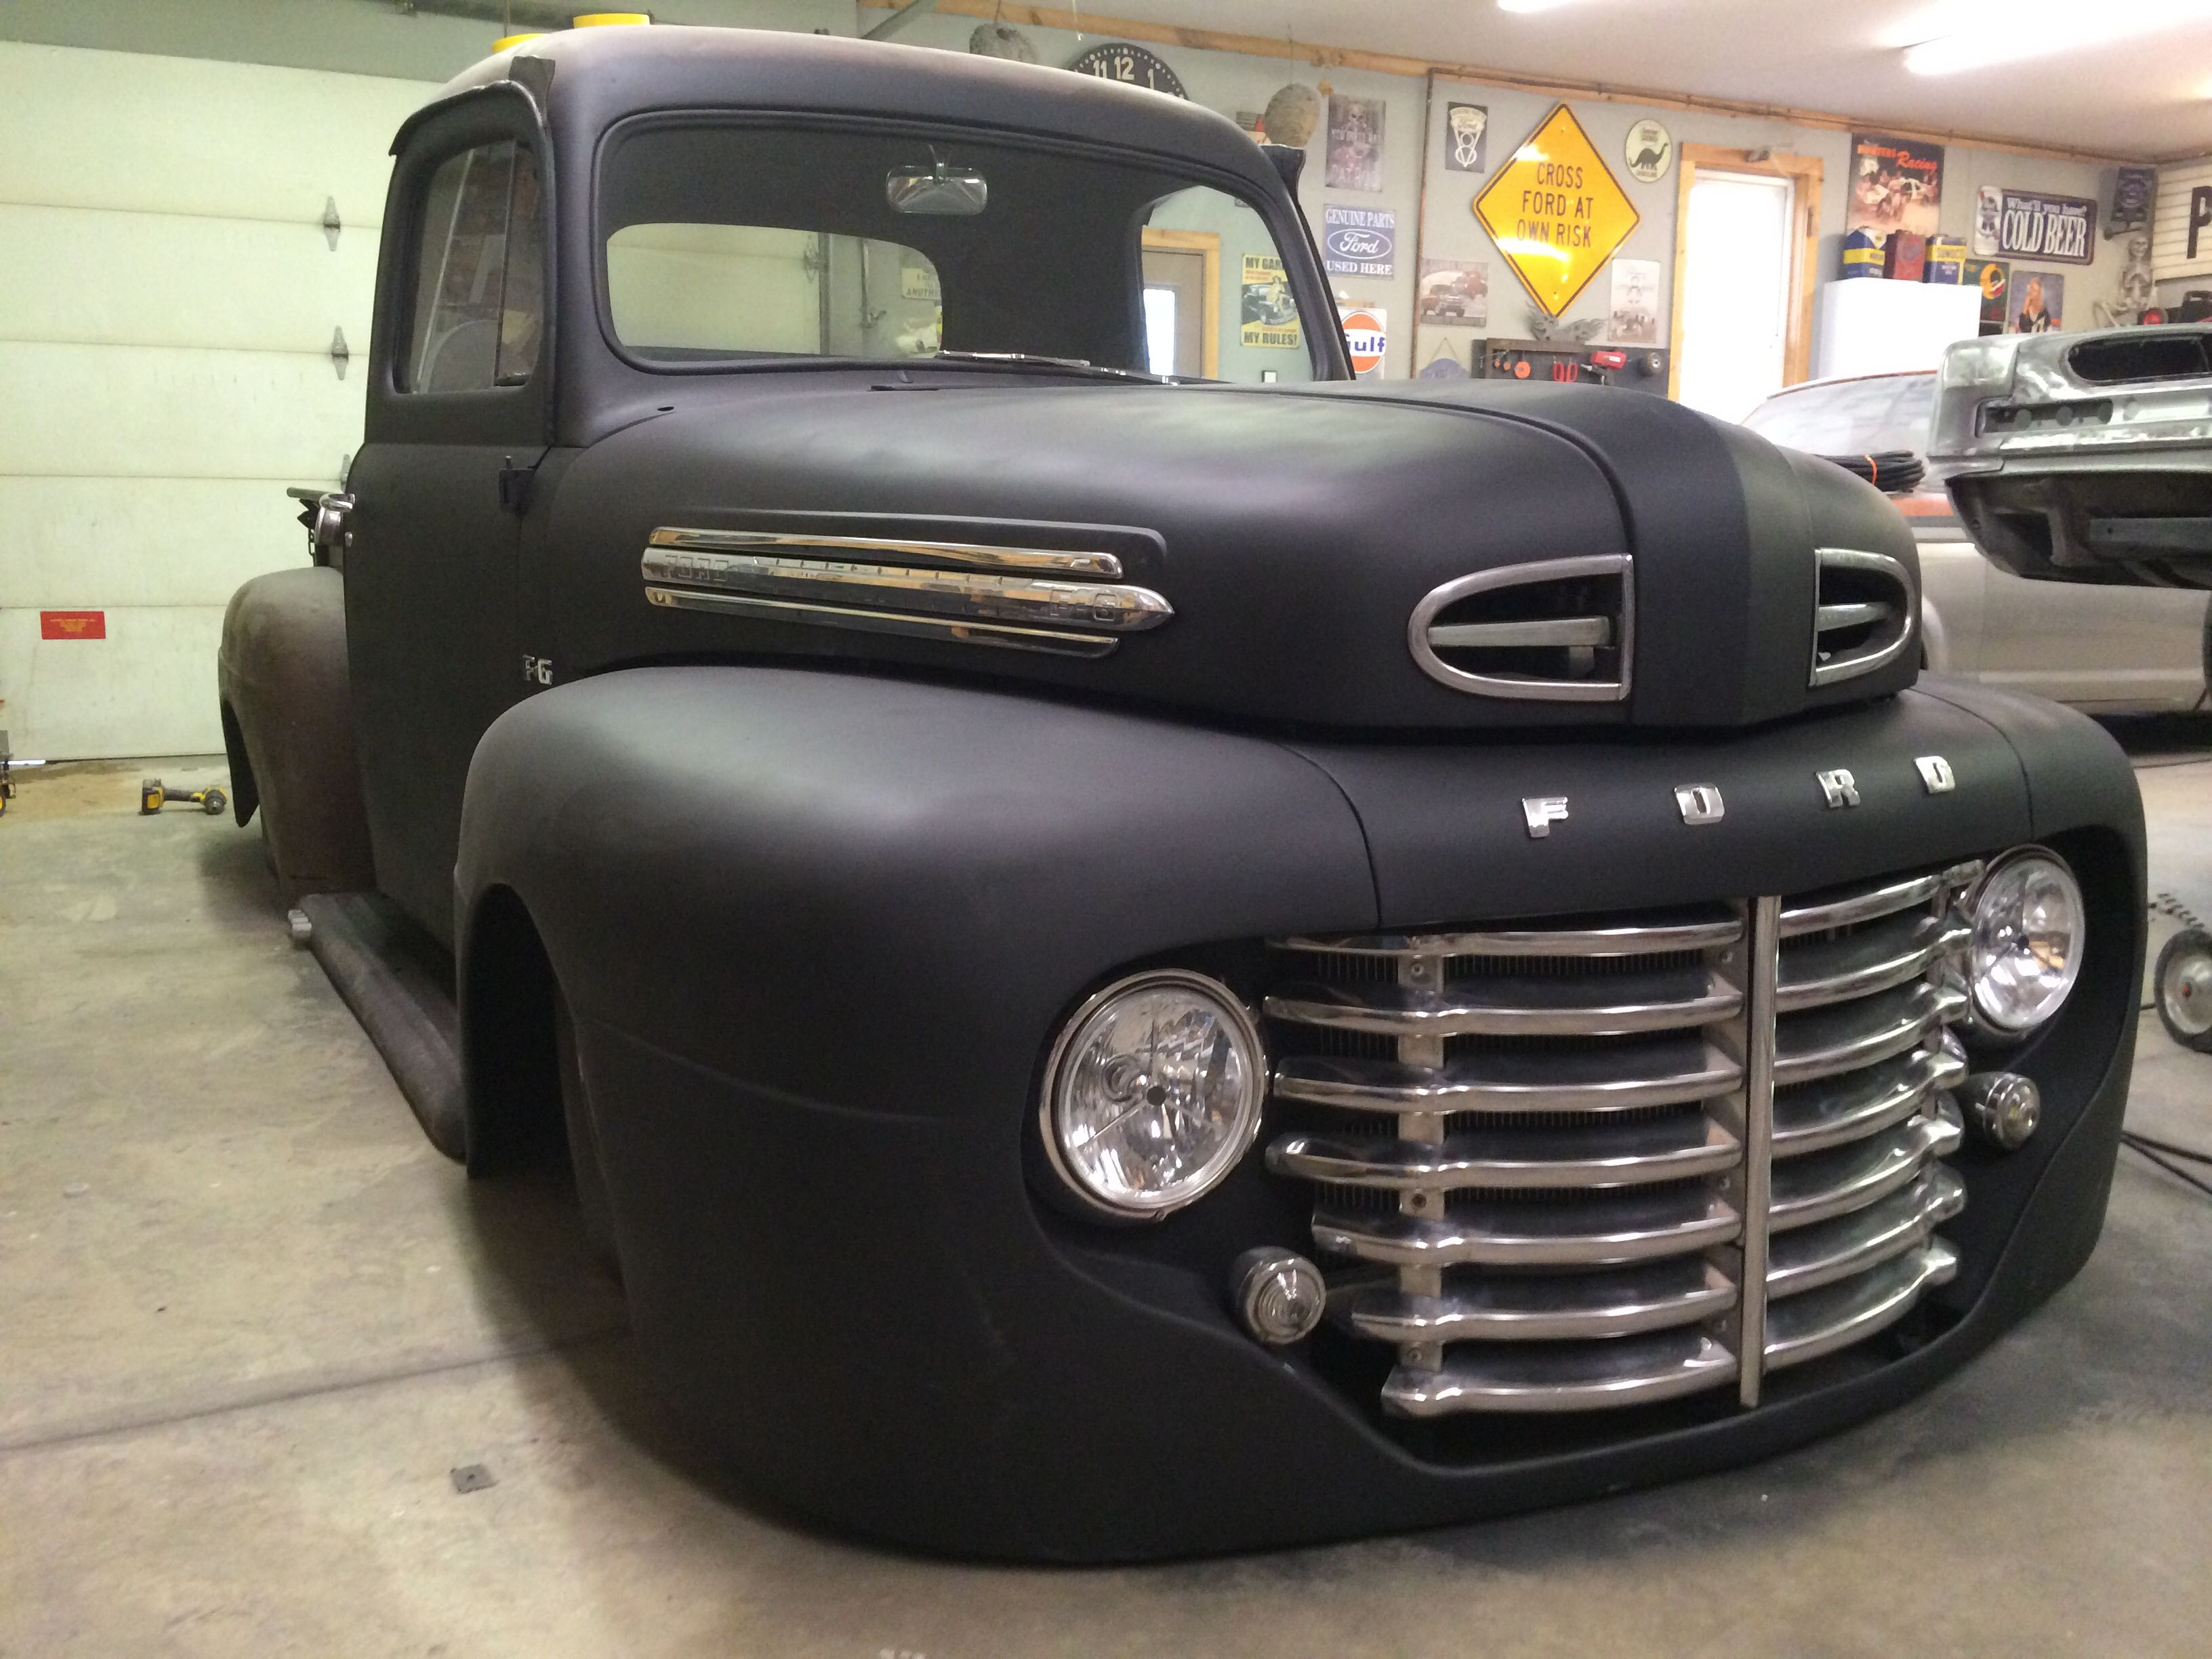 1949 Ford F6 Maintenance Restoration Of Old Vintage Vehicles The Material For New Cogs Casters Gears Pads C Classic Chevy Trucks Custom Trucks 1952 Ford Truck